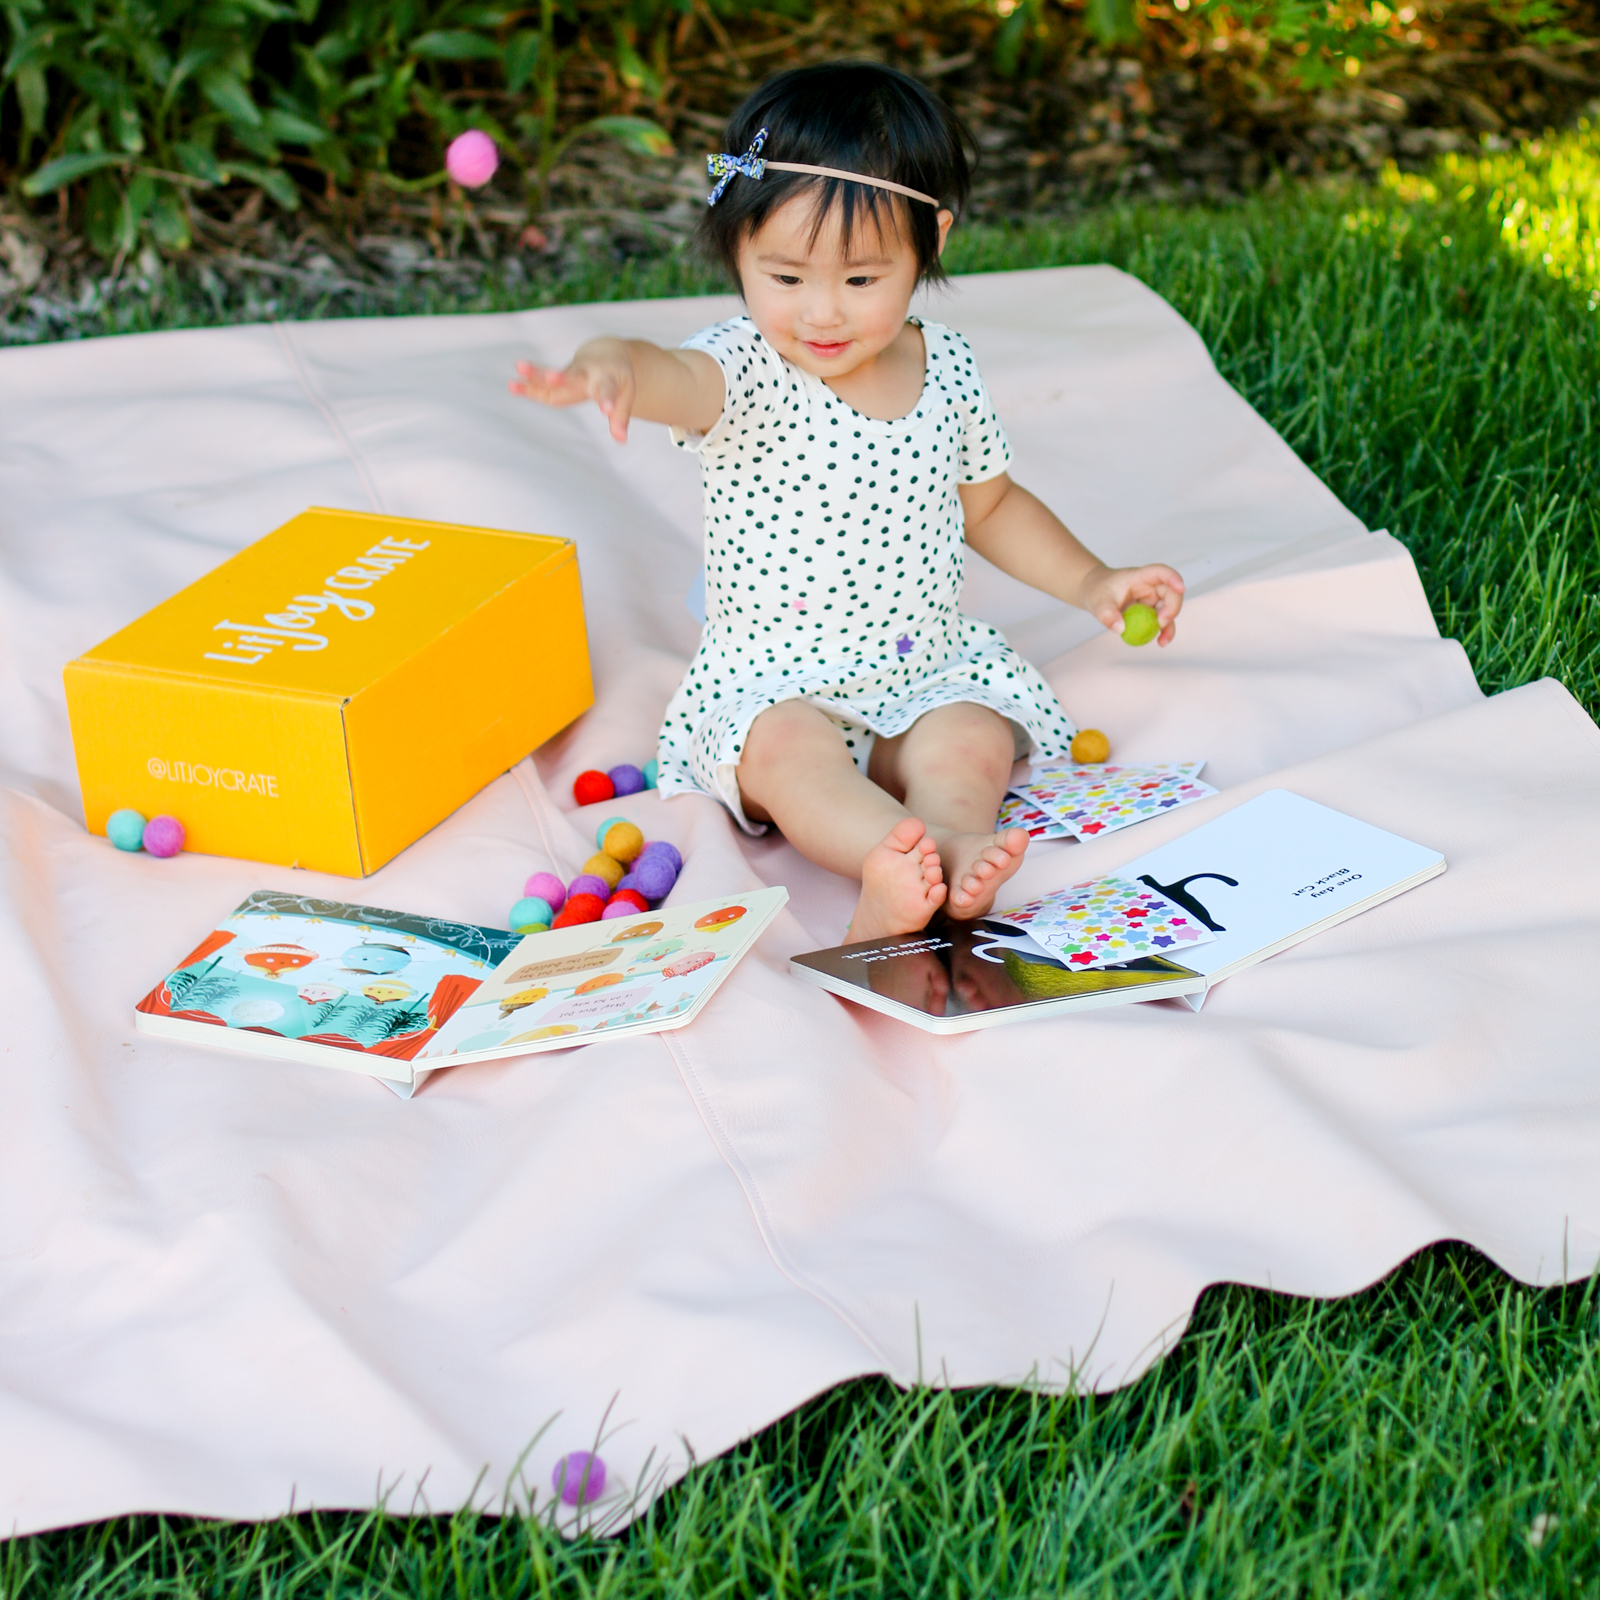 Lit Joy Crate book subscription box for kids